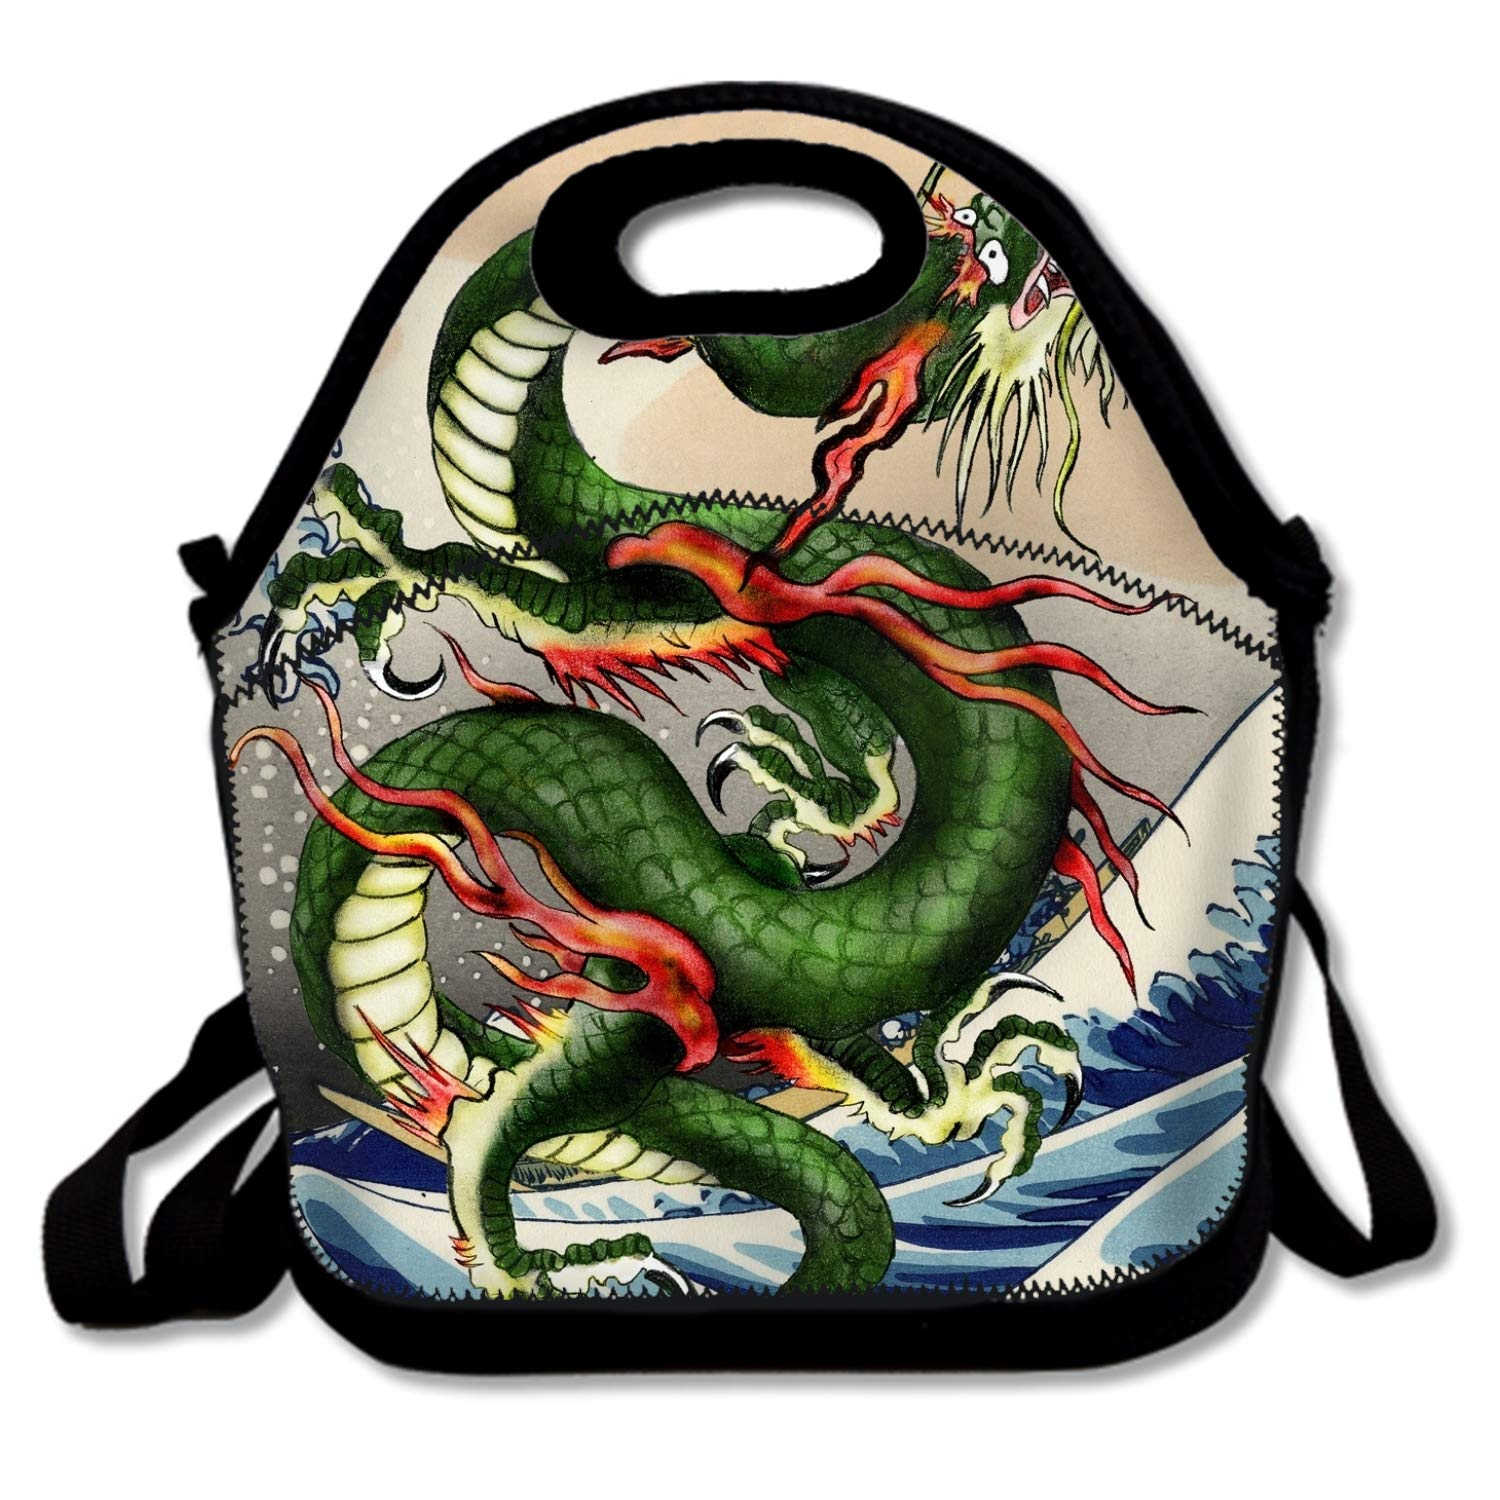 Dreamting Dragon Japanese Insulated Lunch Bag - Neoprene Lunch Bag - Large Reusable Lunch Tote Bags For Women, Teens, Girls, Kids, Baby, Adults Portable Carry